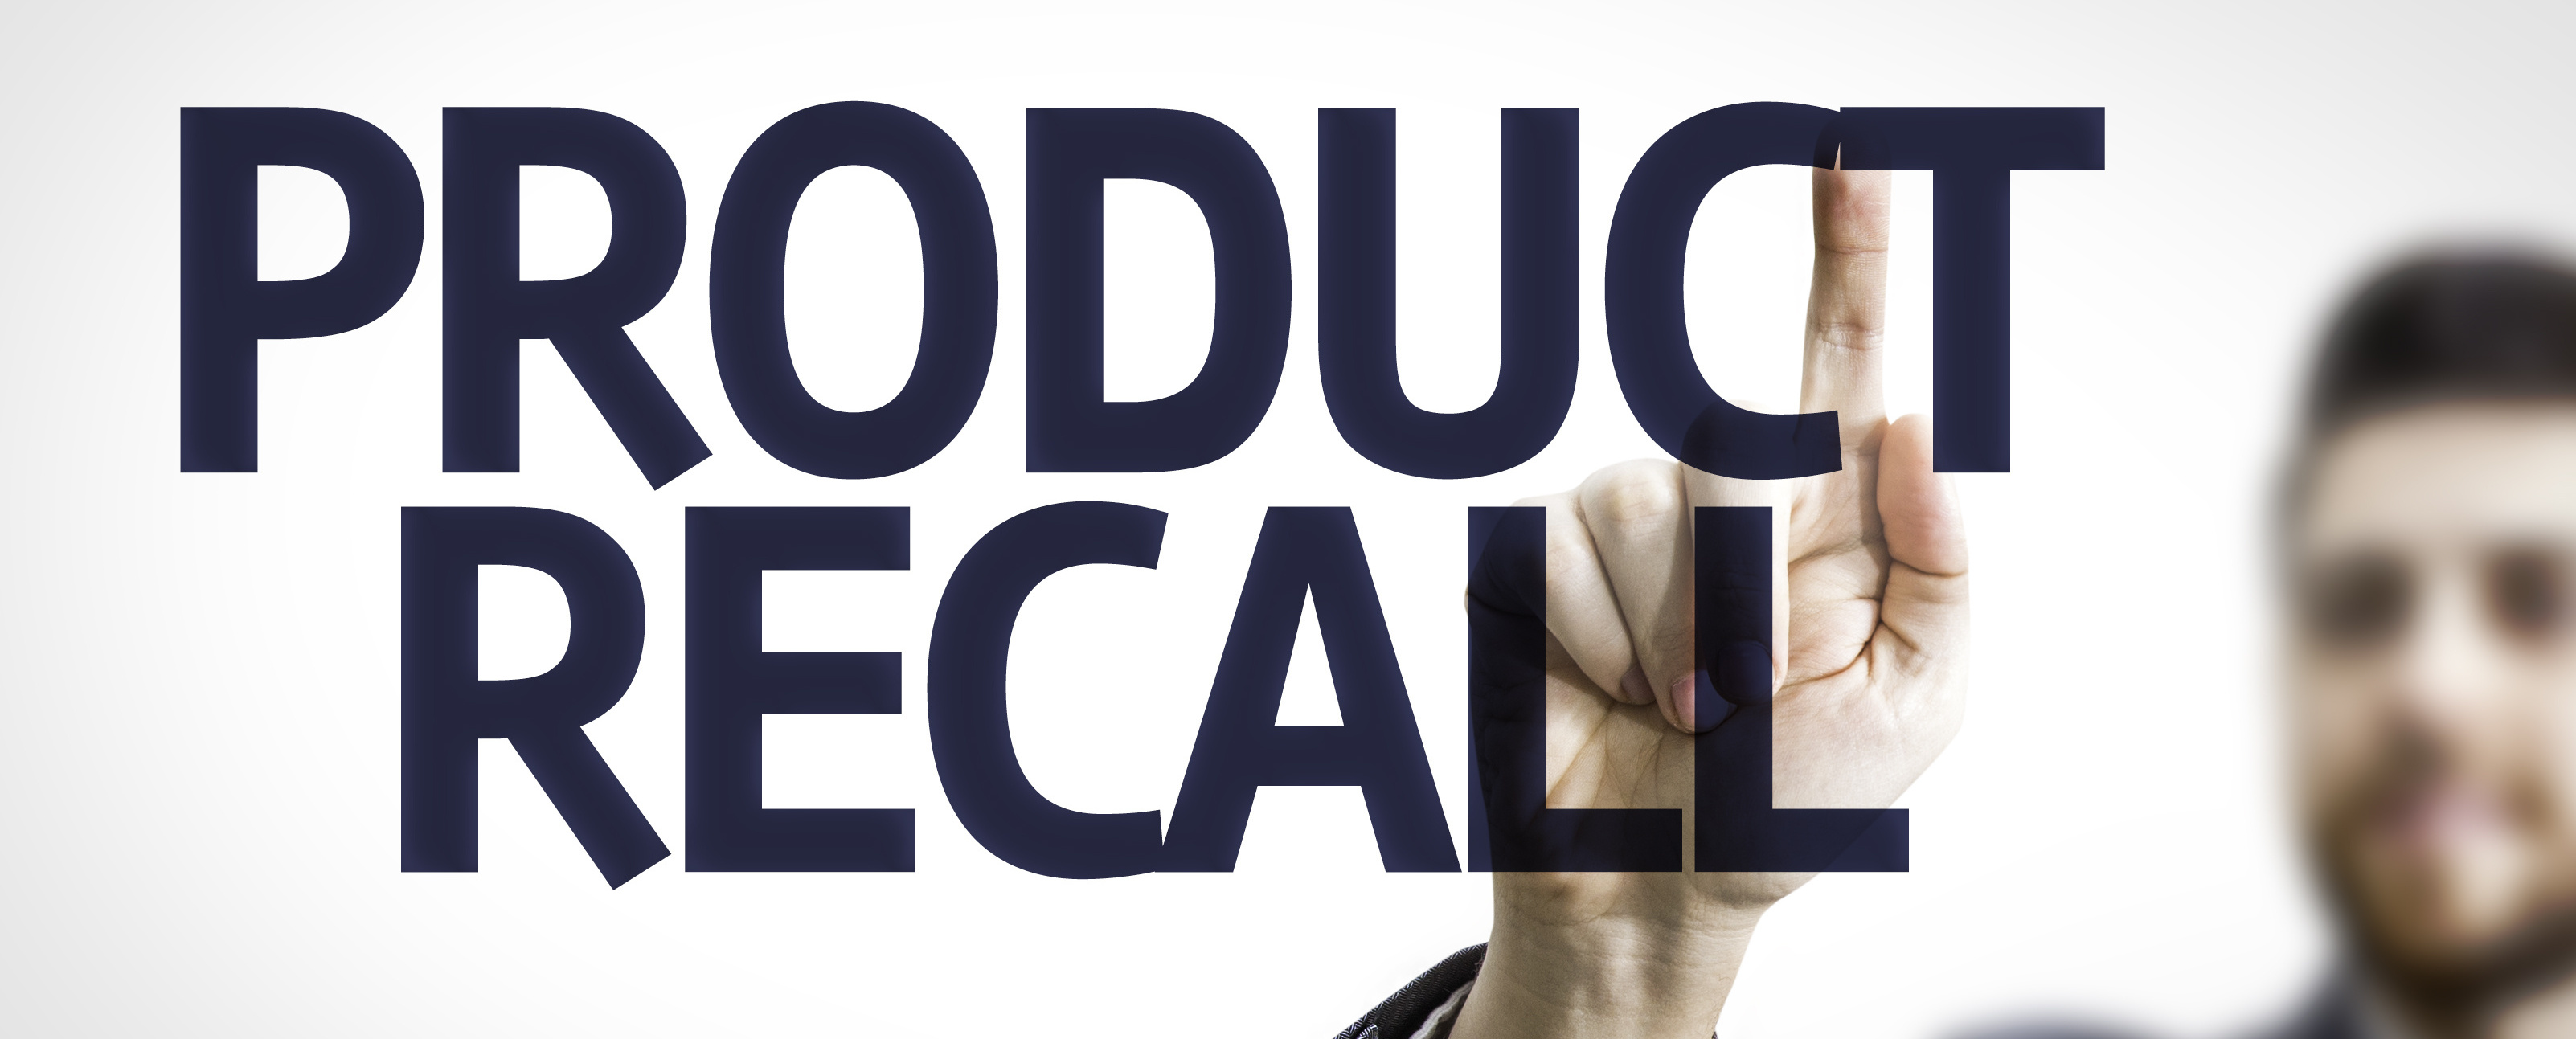 Topical Products Voluntarily Recalled Due to Unsafe Manufacturing